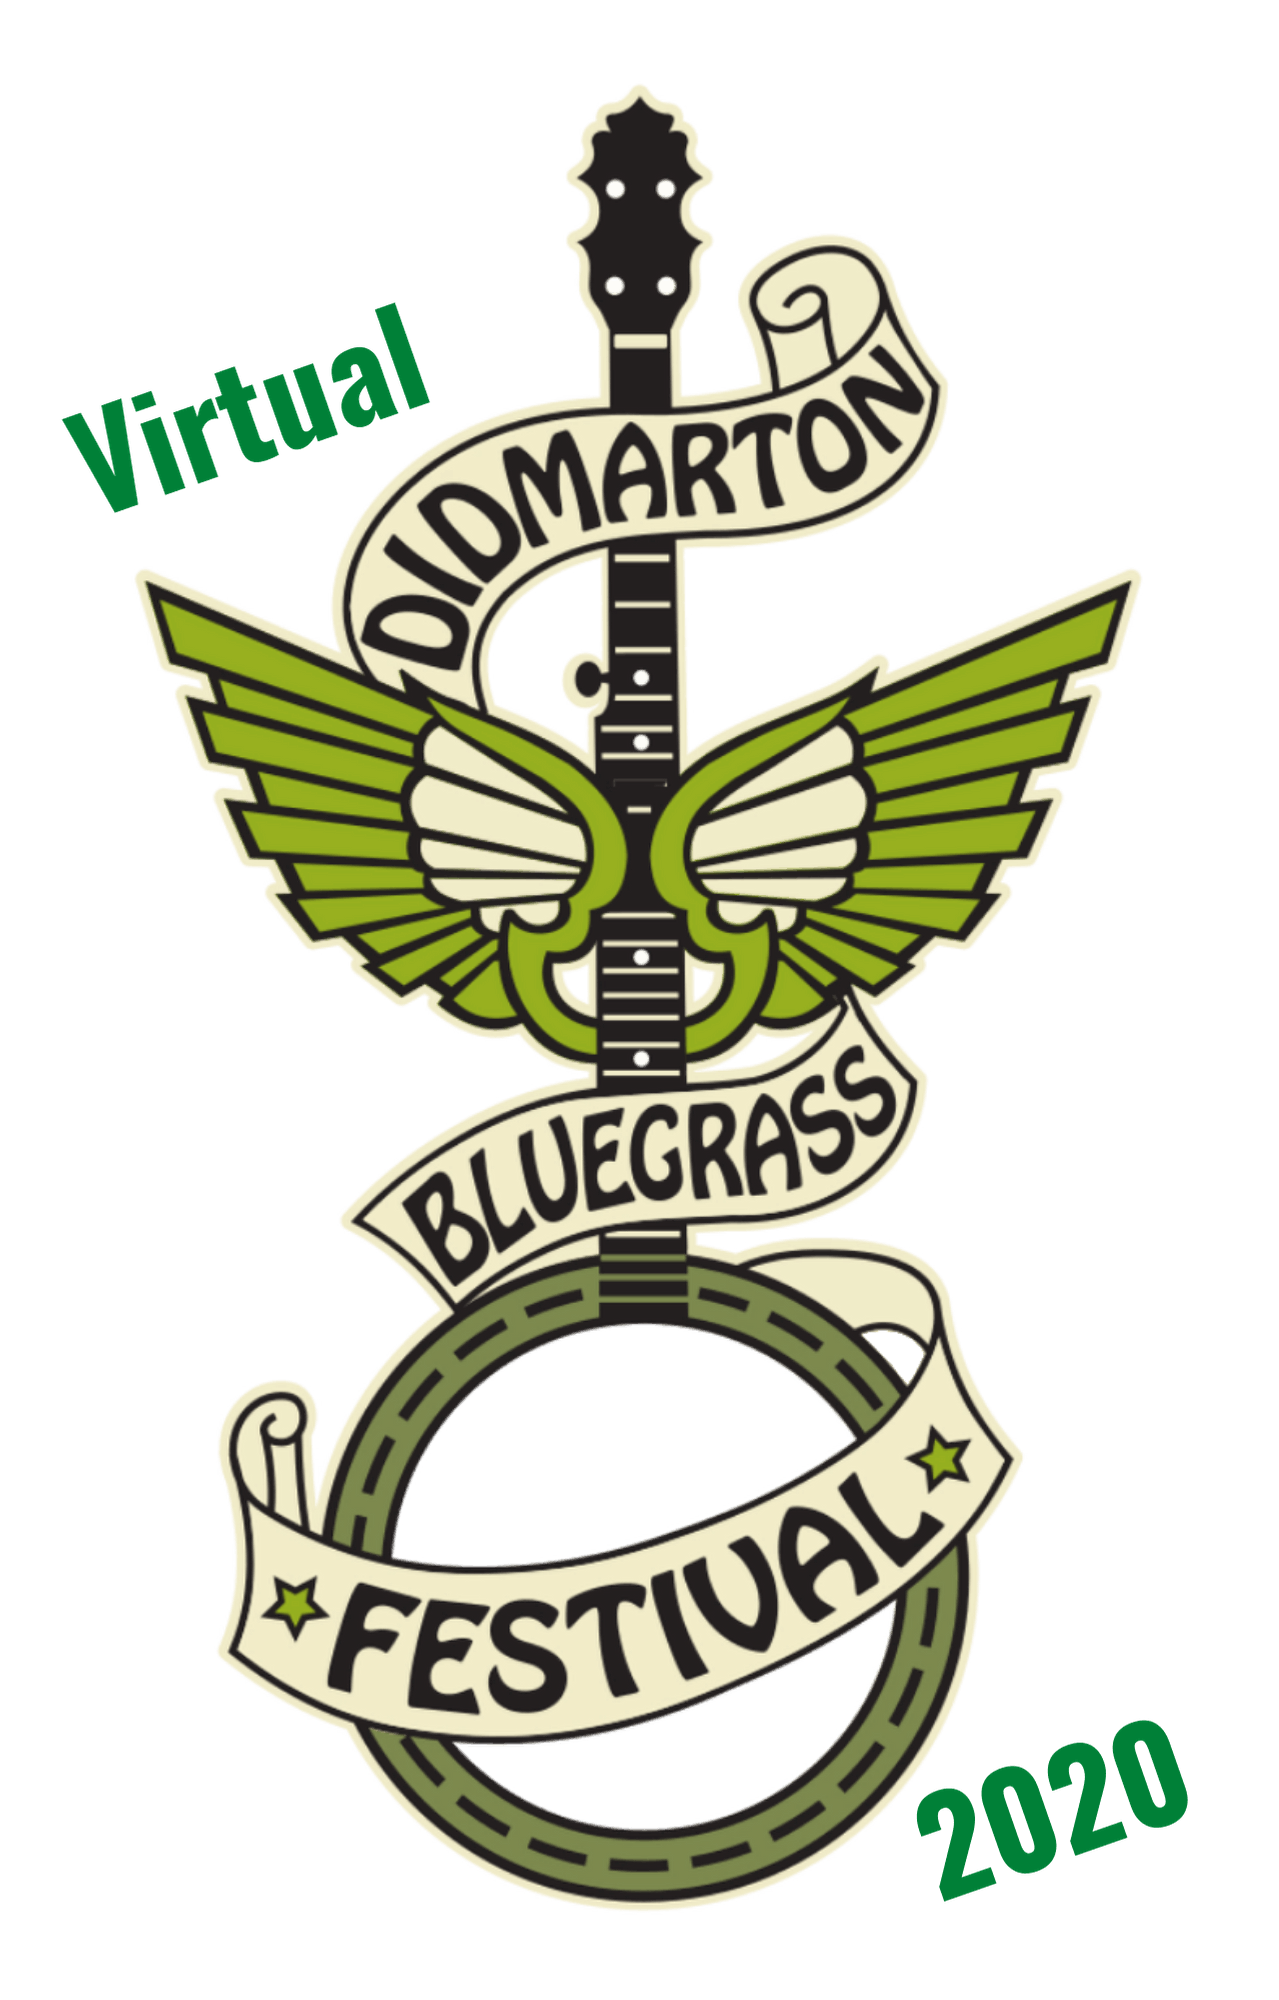 The virtual Didmarton Bluegrass Festival 2020